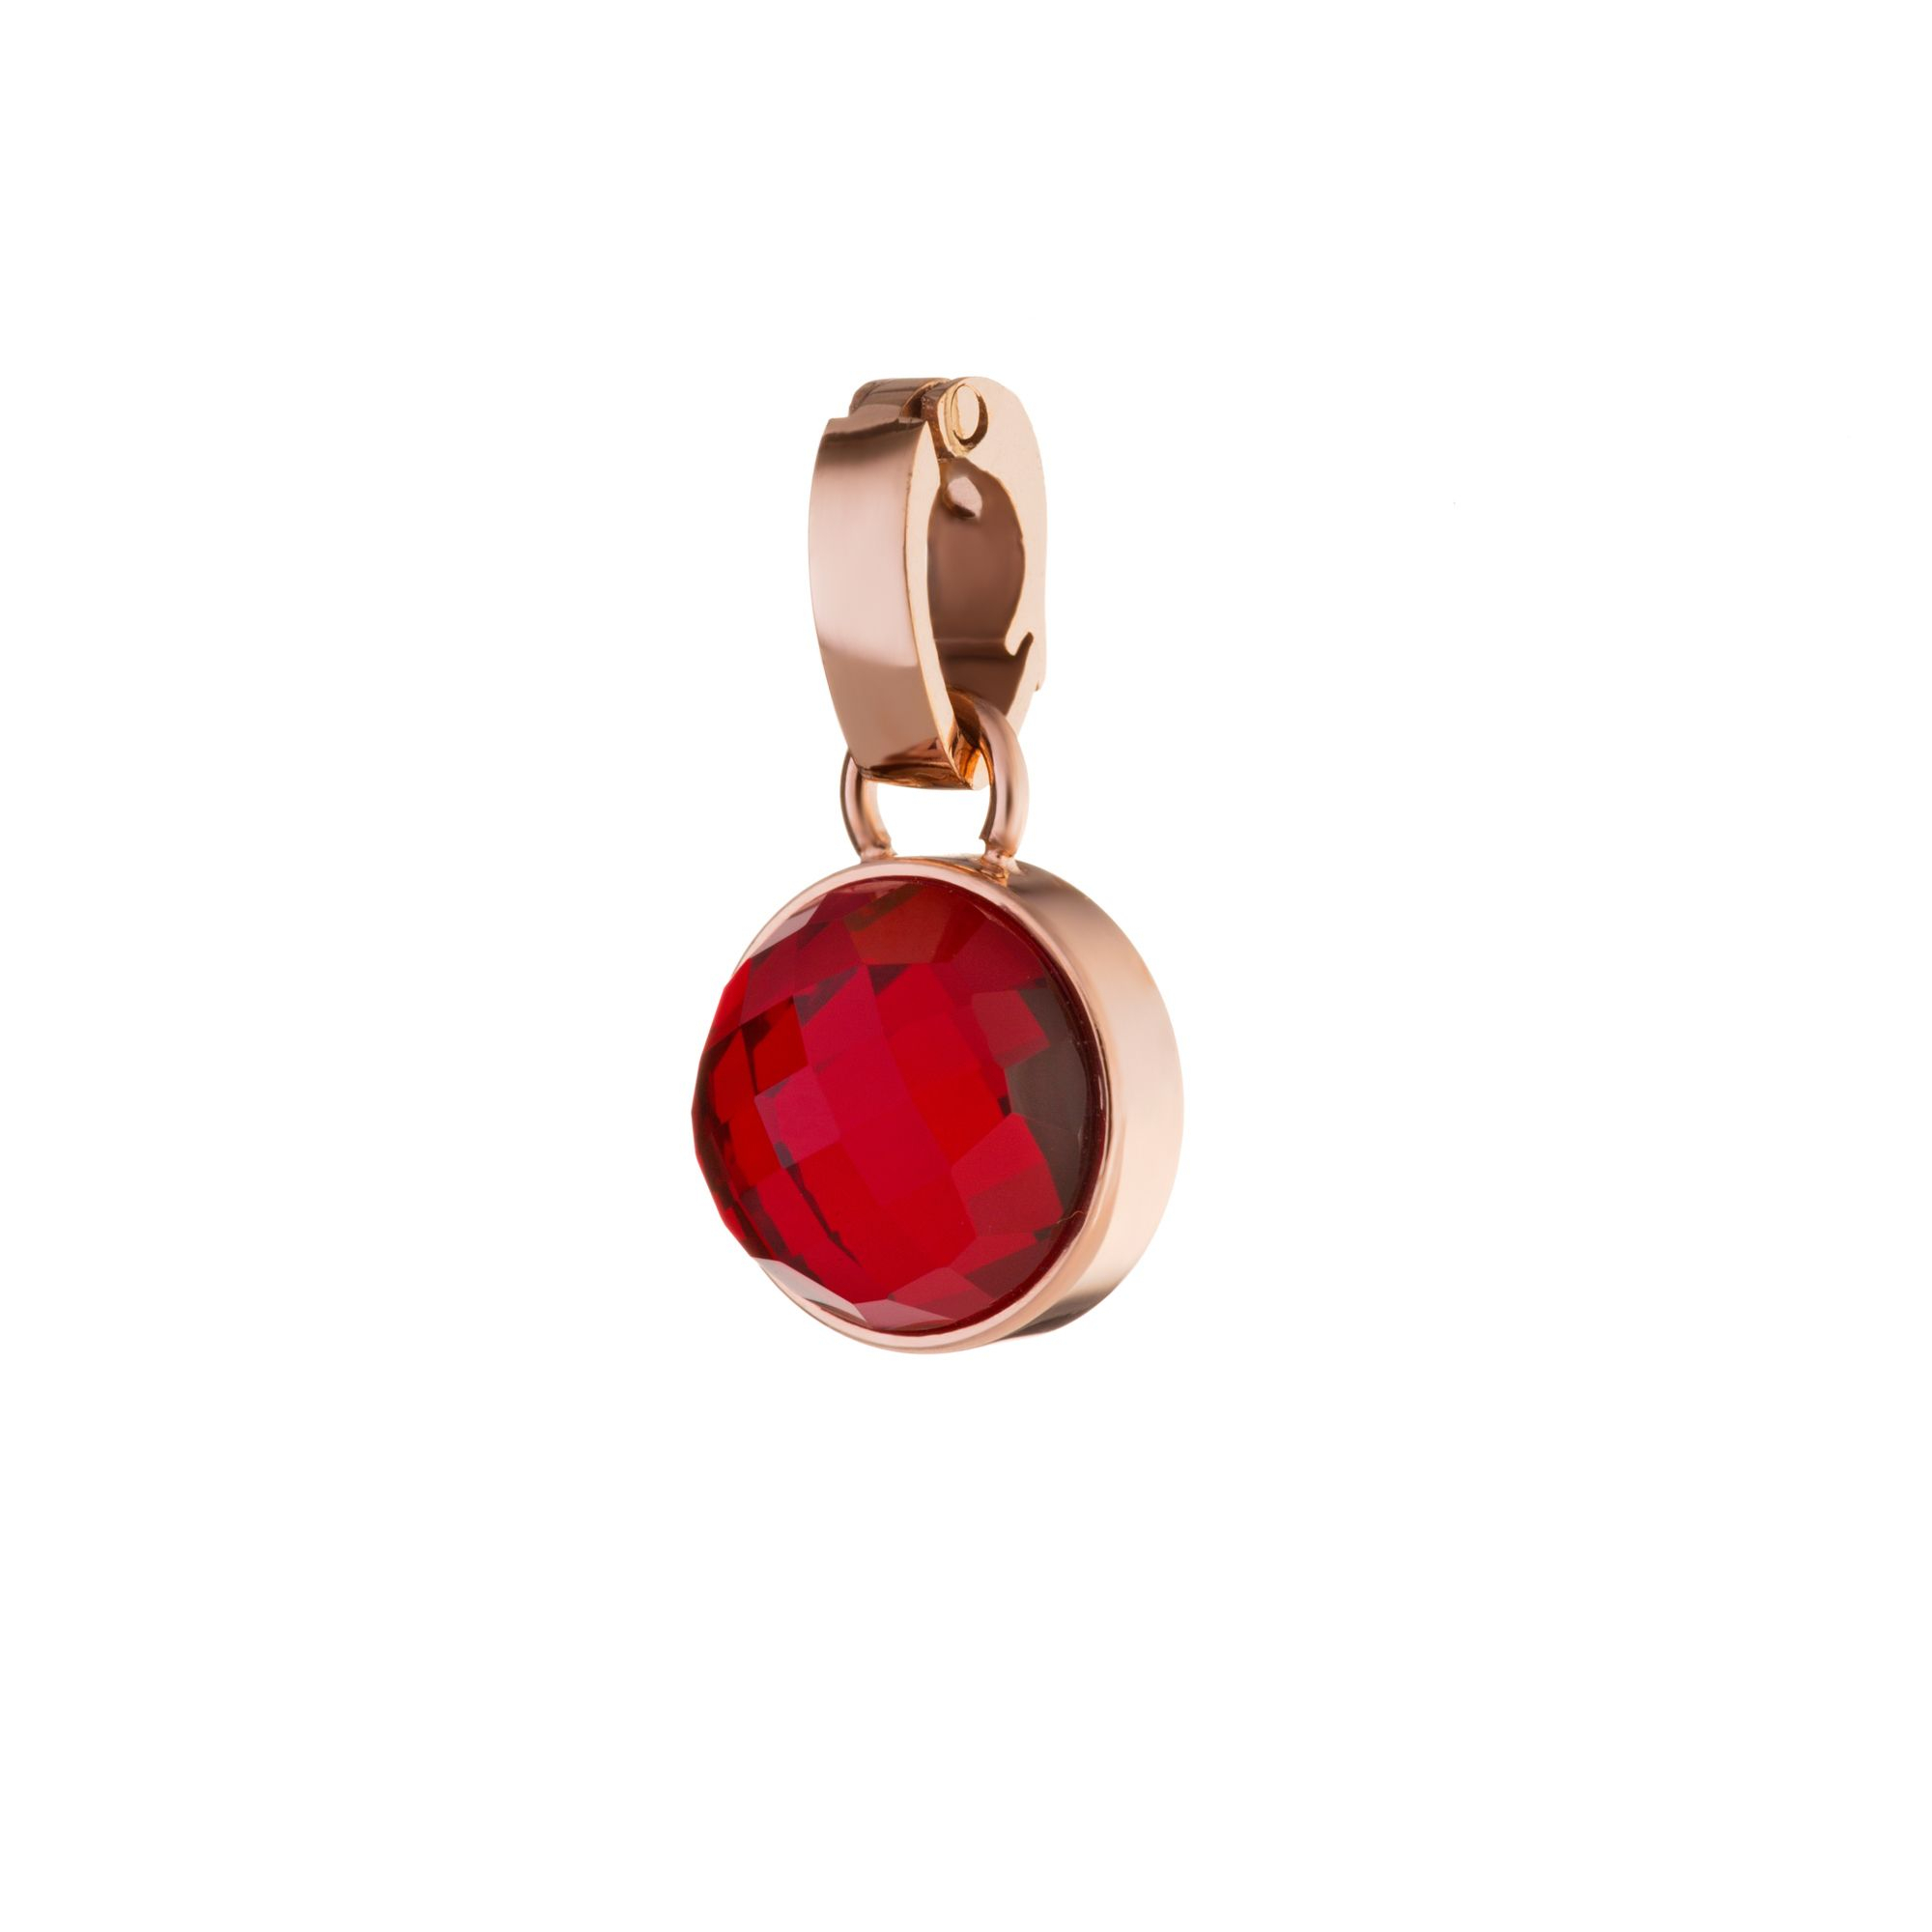 Passion Dainty Signature Pendant Rose Gold, Red Glass Regarding 2019 Garnet Red January Birthstone Locket Element Necklaces (View 4 of 25)